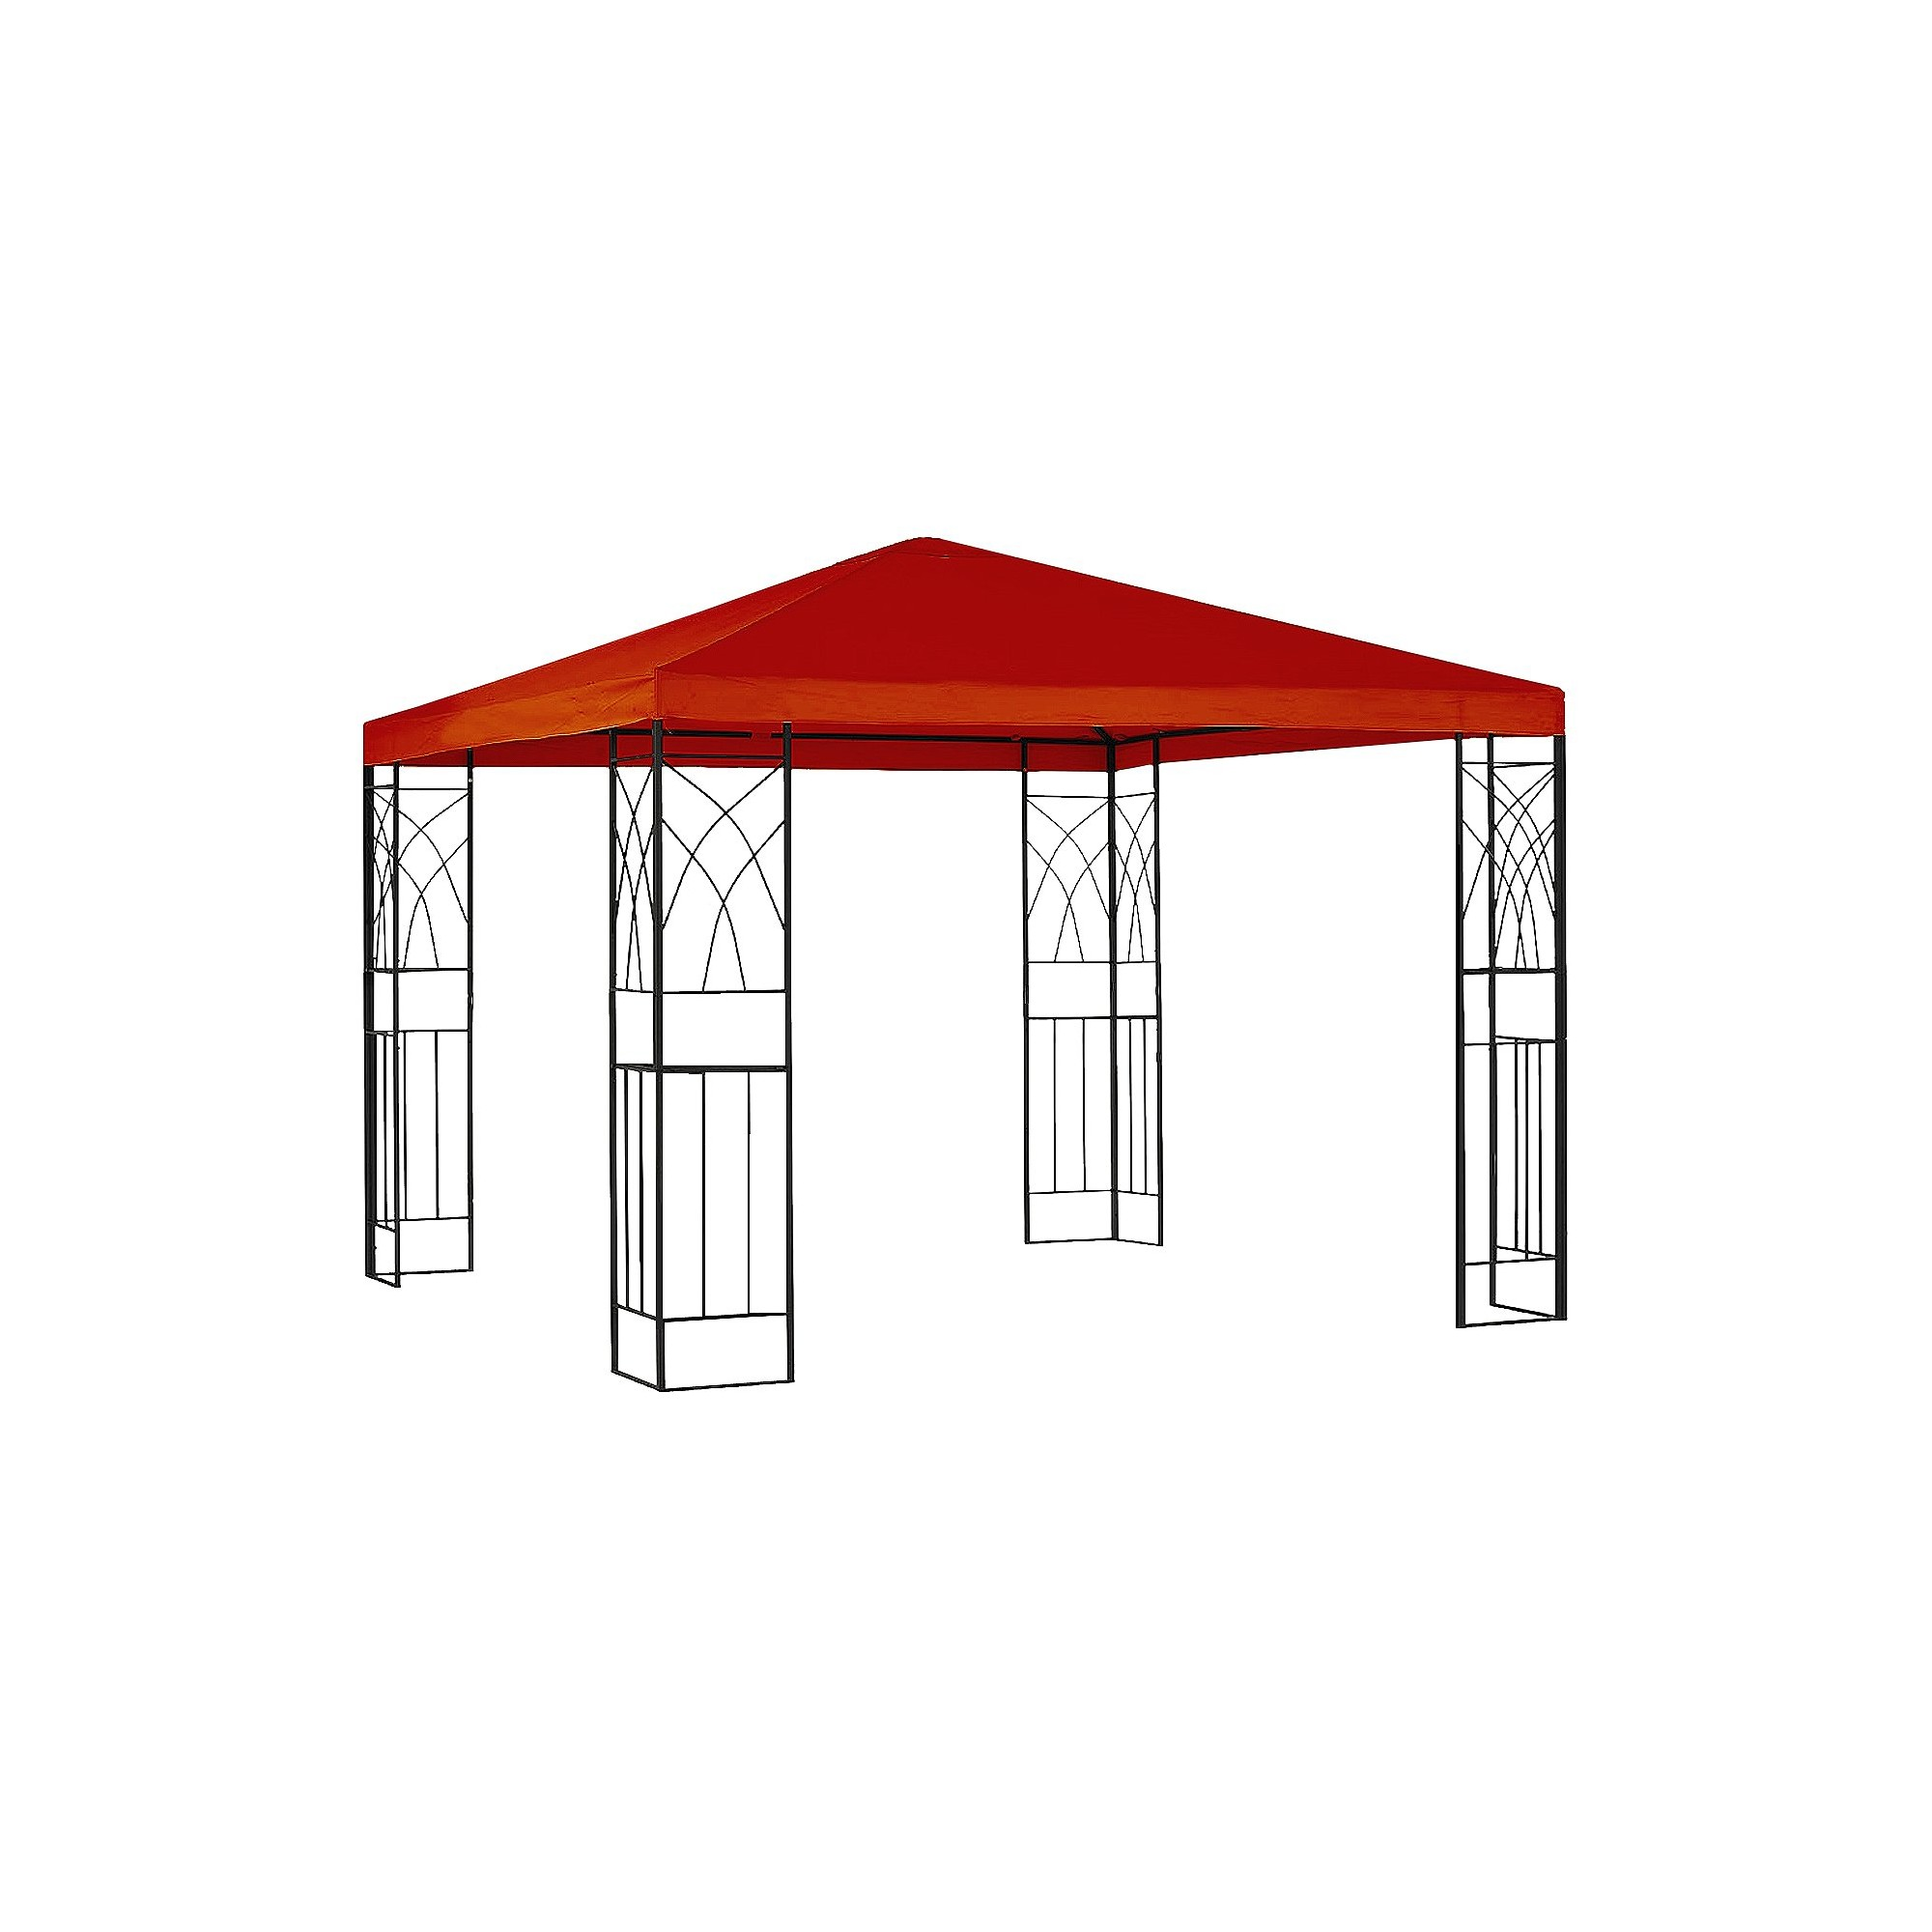 10x10u0027 Replacement Gazebo Canopy - Red - Room Essentials  sc 1 st  Pinterest & 10x10u0027 Replacement Gazebo Canopy - Red - Room Essentials | Red ...